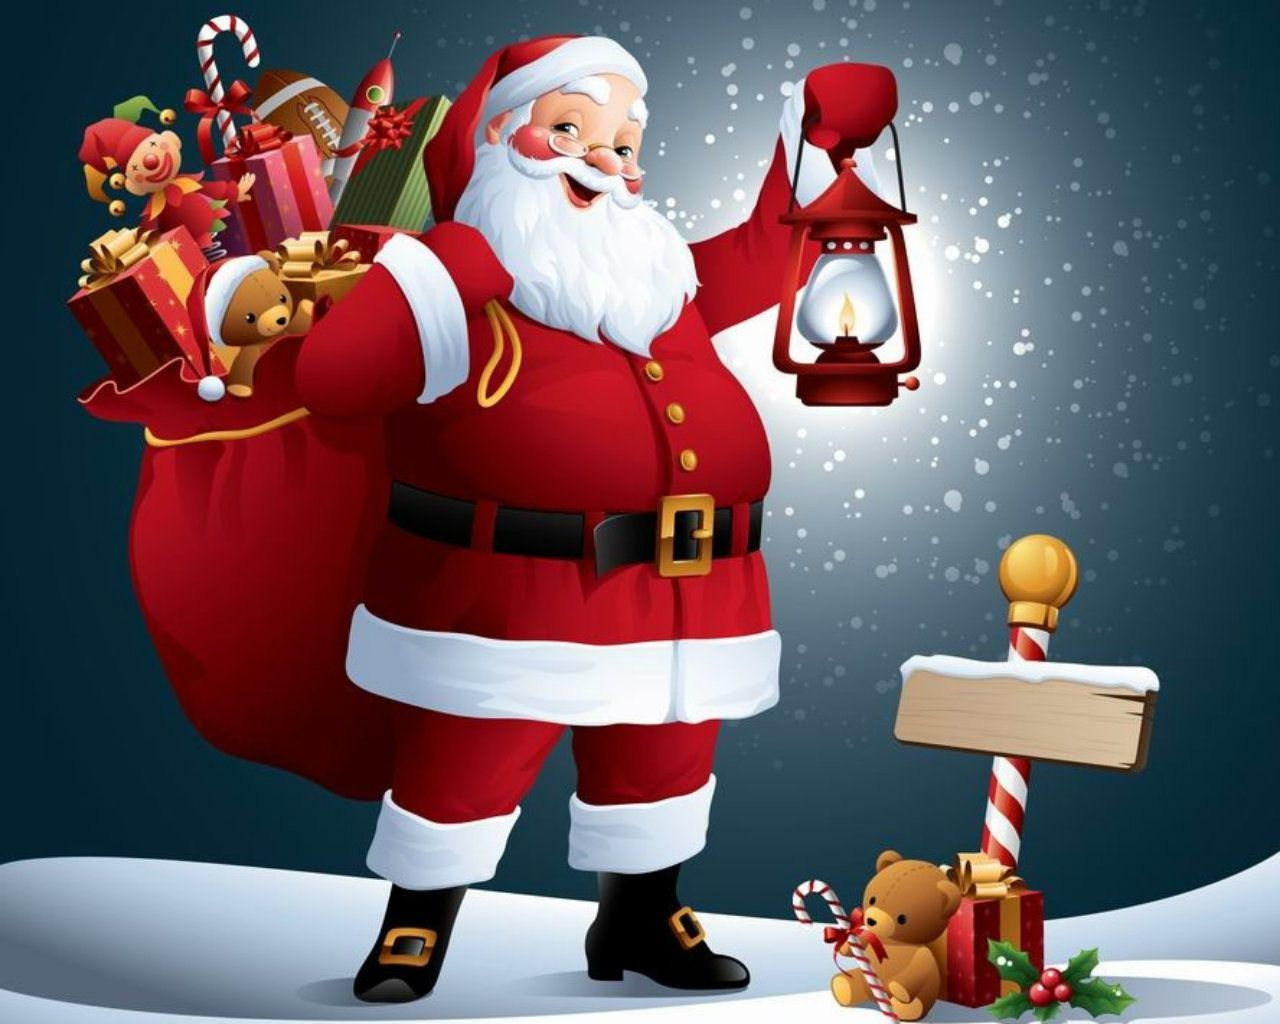 Animated Santa Claus Images Free.